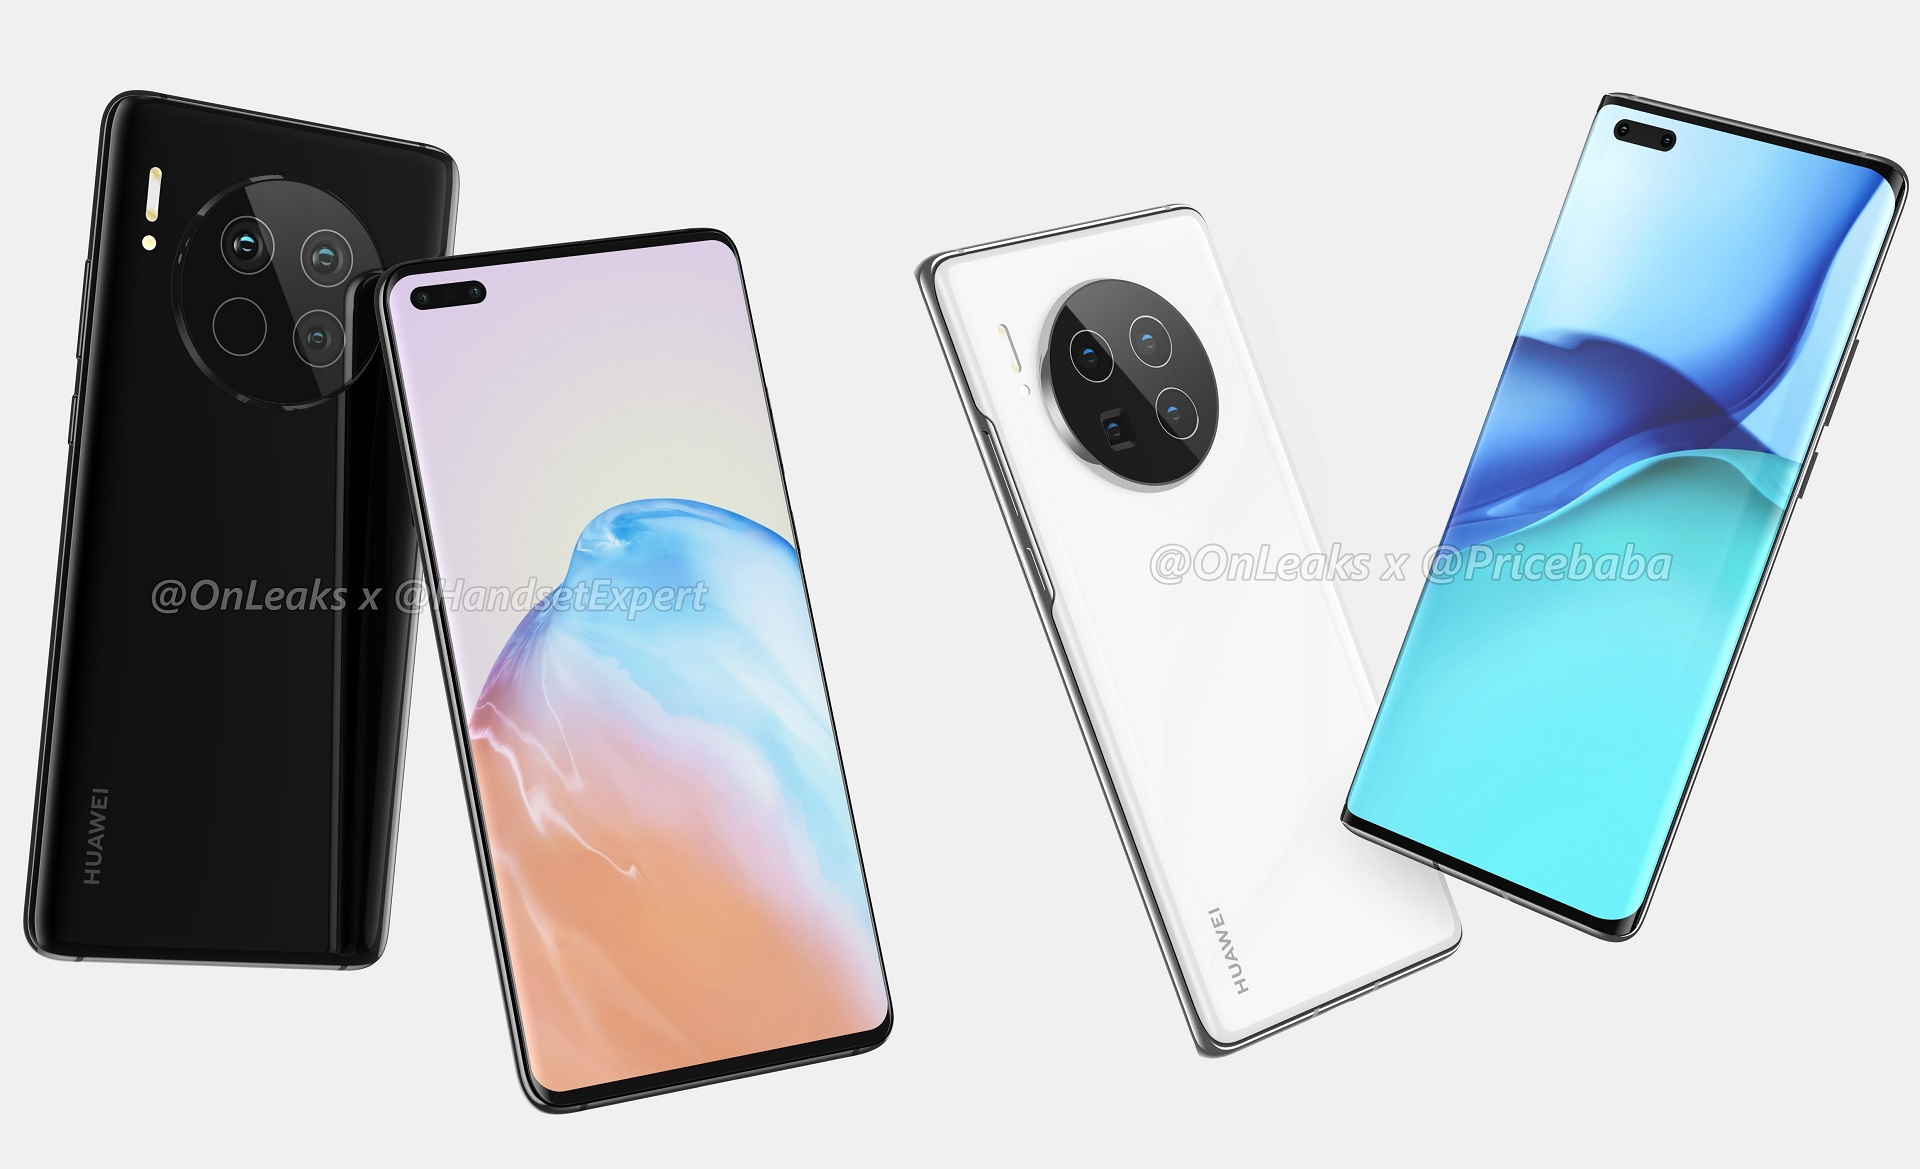 Leaker reveals the Huawei and Honor devices that will arrive in Europe soon, and the Mate 40 Pro is conspicuously absent - Notebookcheck.net